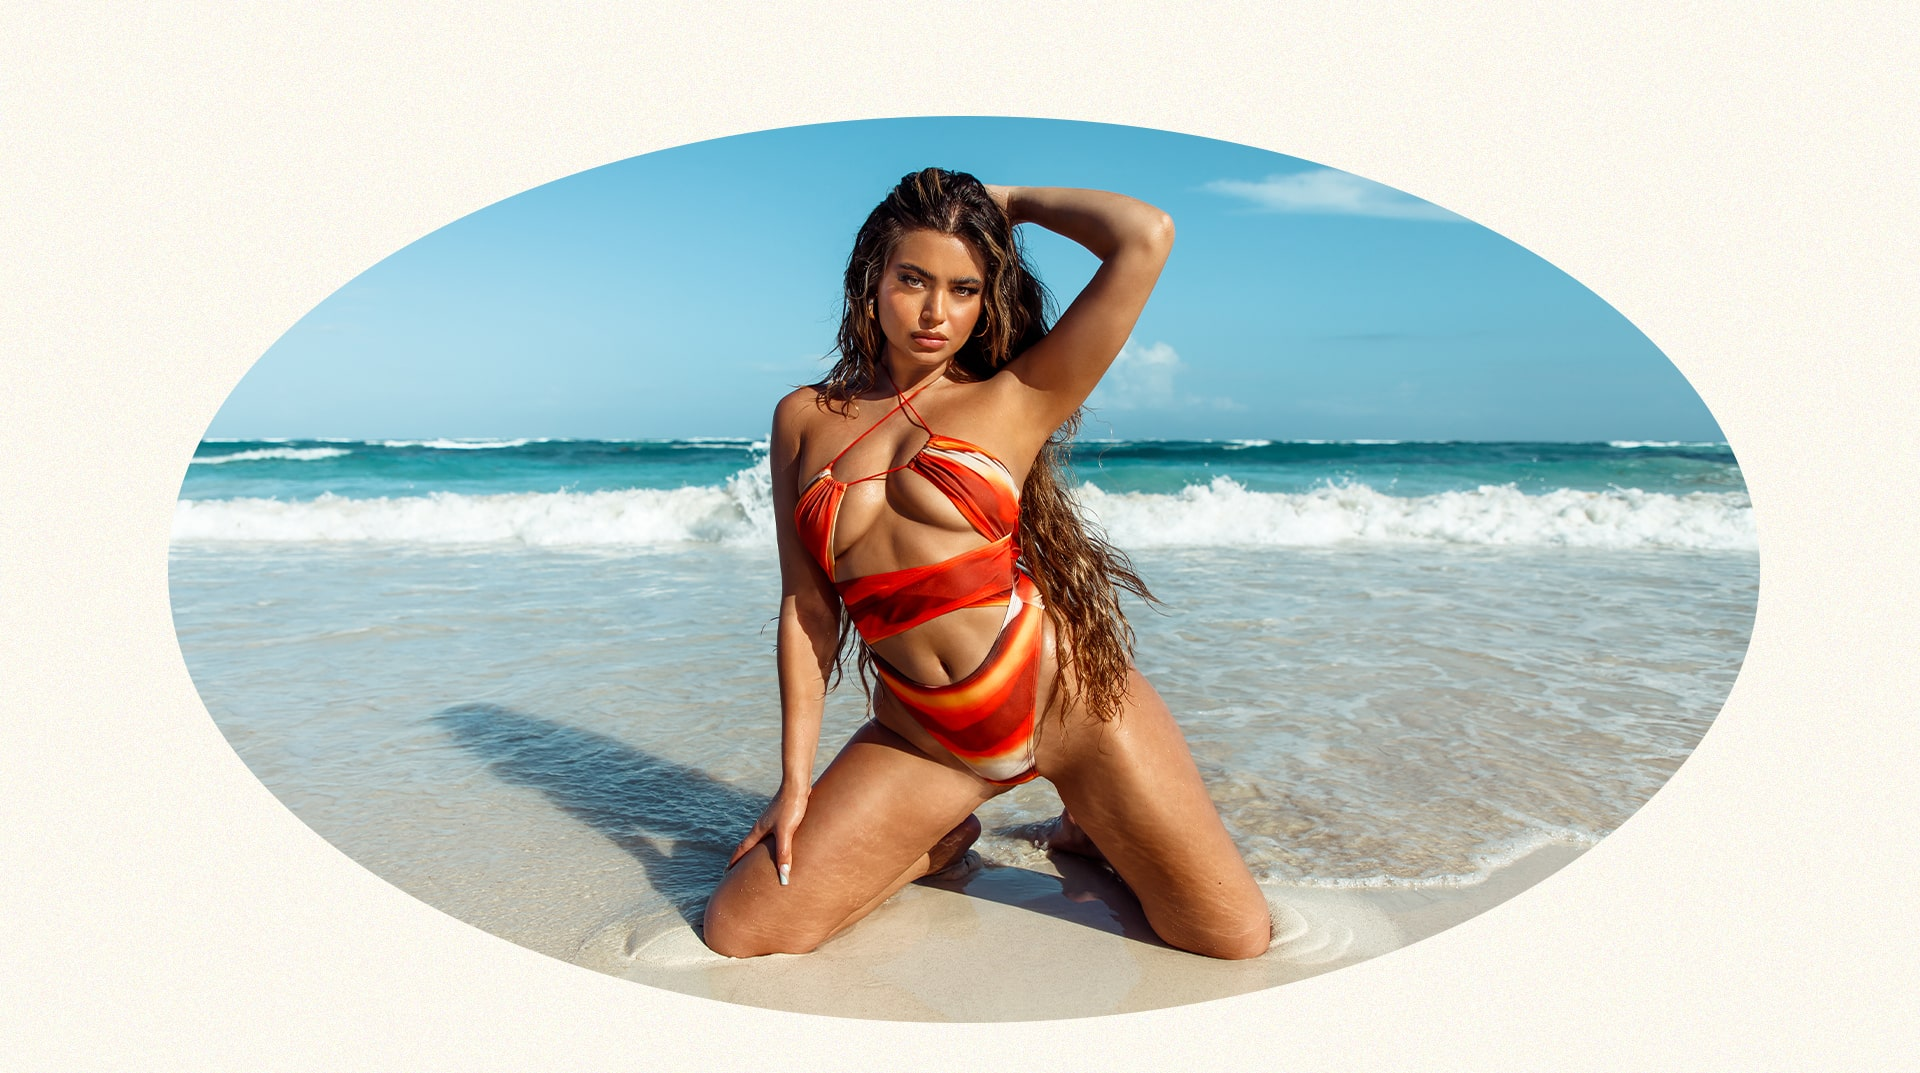 Destination Swim Tulum Lookbook Image Desktop 14